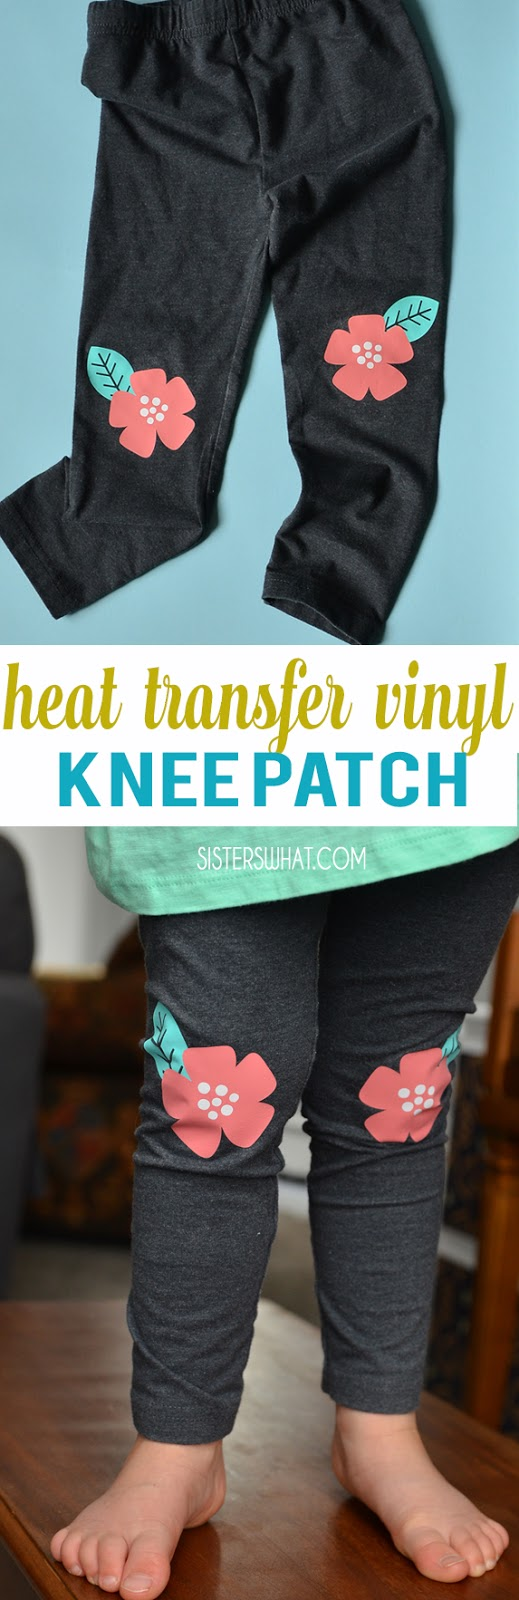 use heat transfer vinyl stretch to add knee patch to leggings. Perfect flower knee patches.